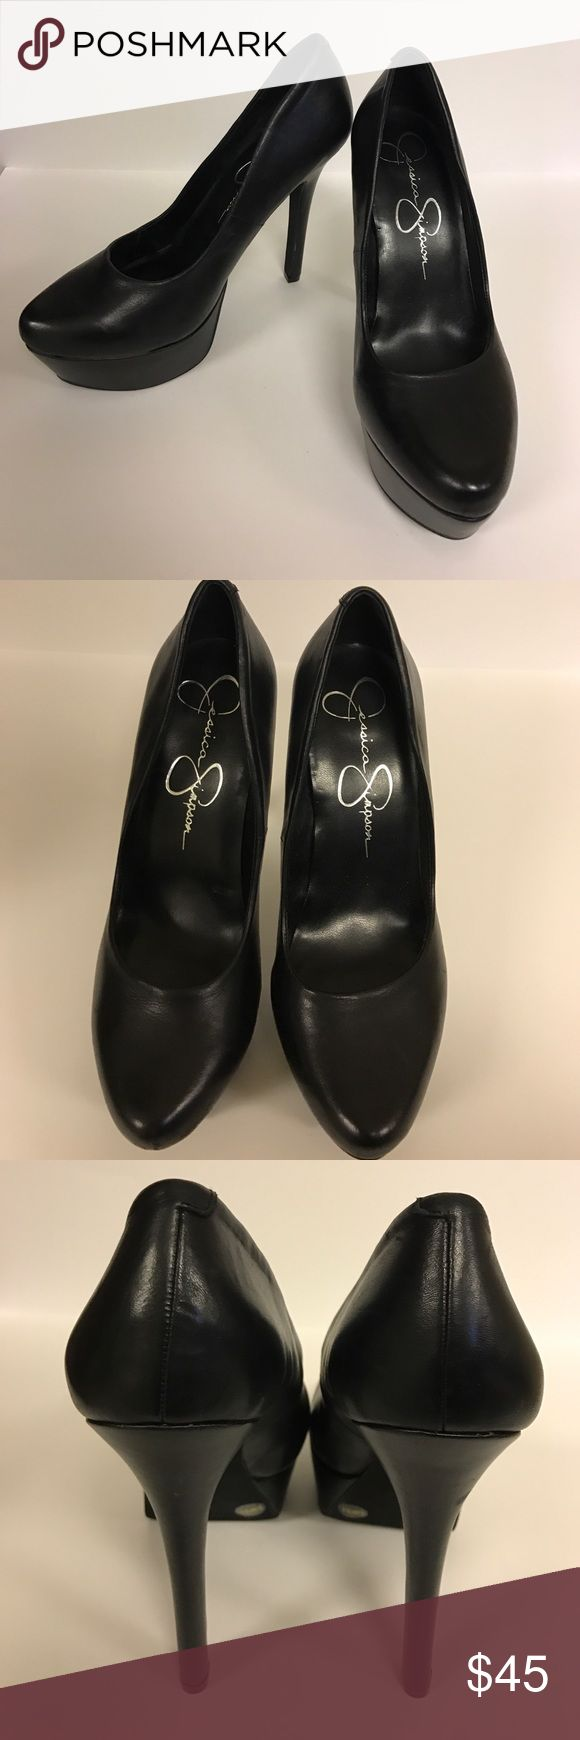 Jessica Simpson Black Pumps Black size 8.5 Jessica Simpson Pumps. Worn twice, excellent condition. Heel height is 4 in. Super comfortable, just not my size! Fits like a 8.5/9. (The white mark in the model photo is just the sticker!) Jessica Simpson Shoes Heels